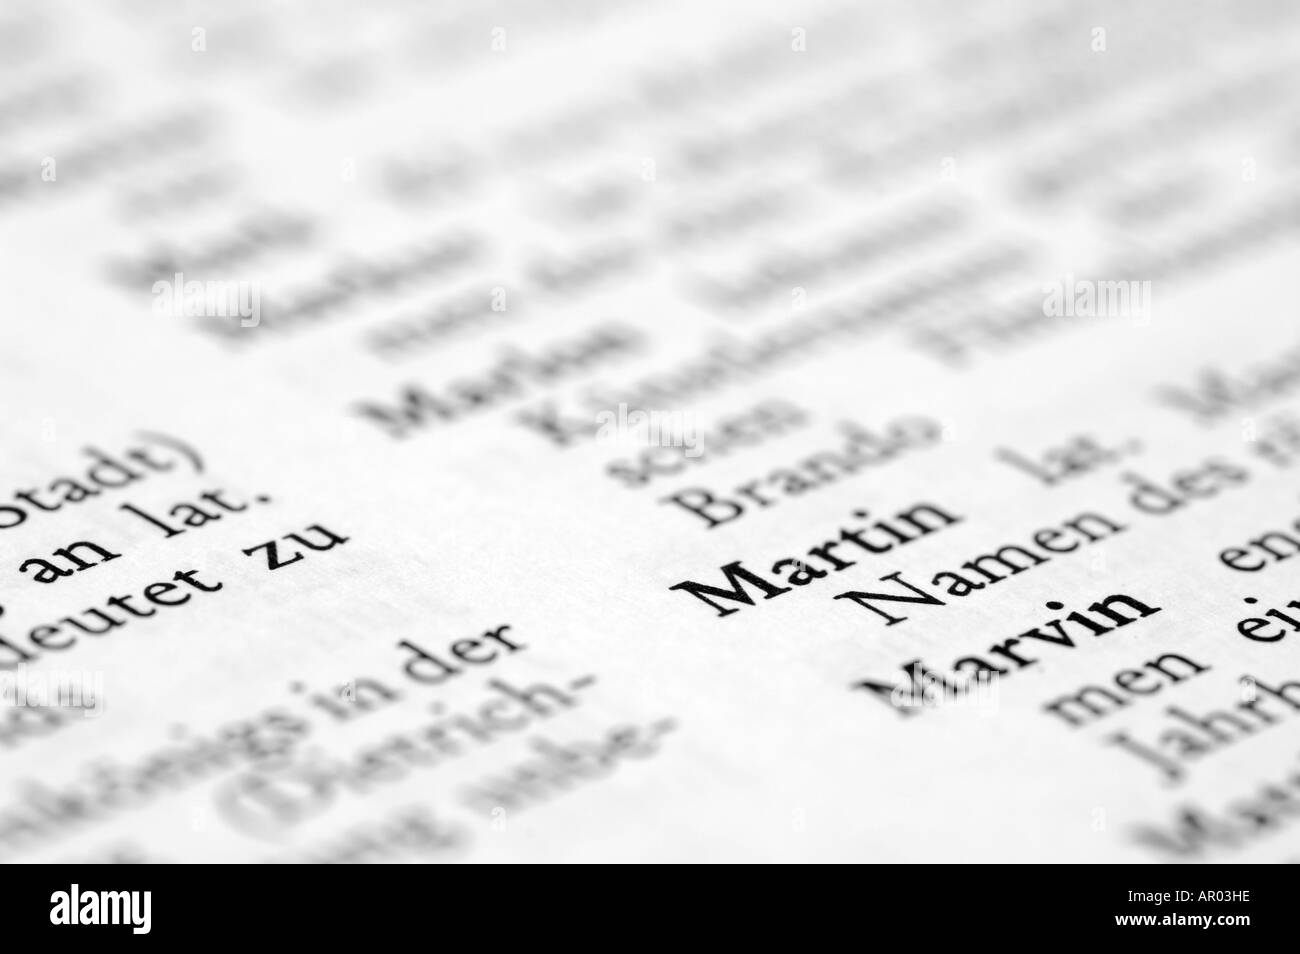 German first names Stock Photo: 9082461 - Alamy